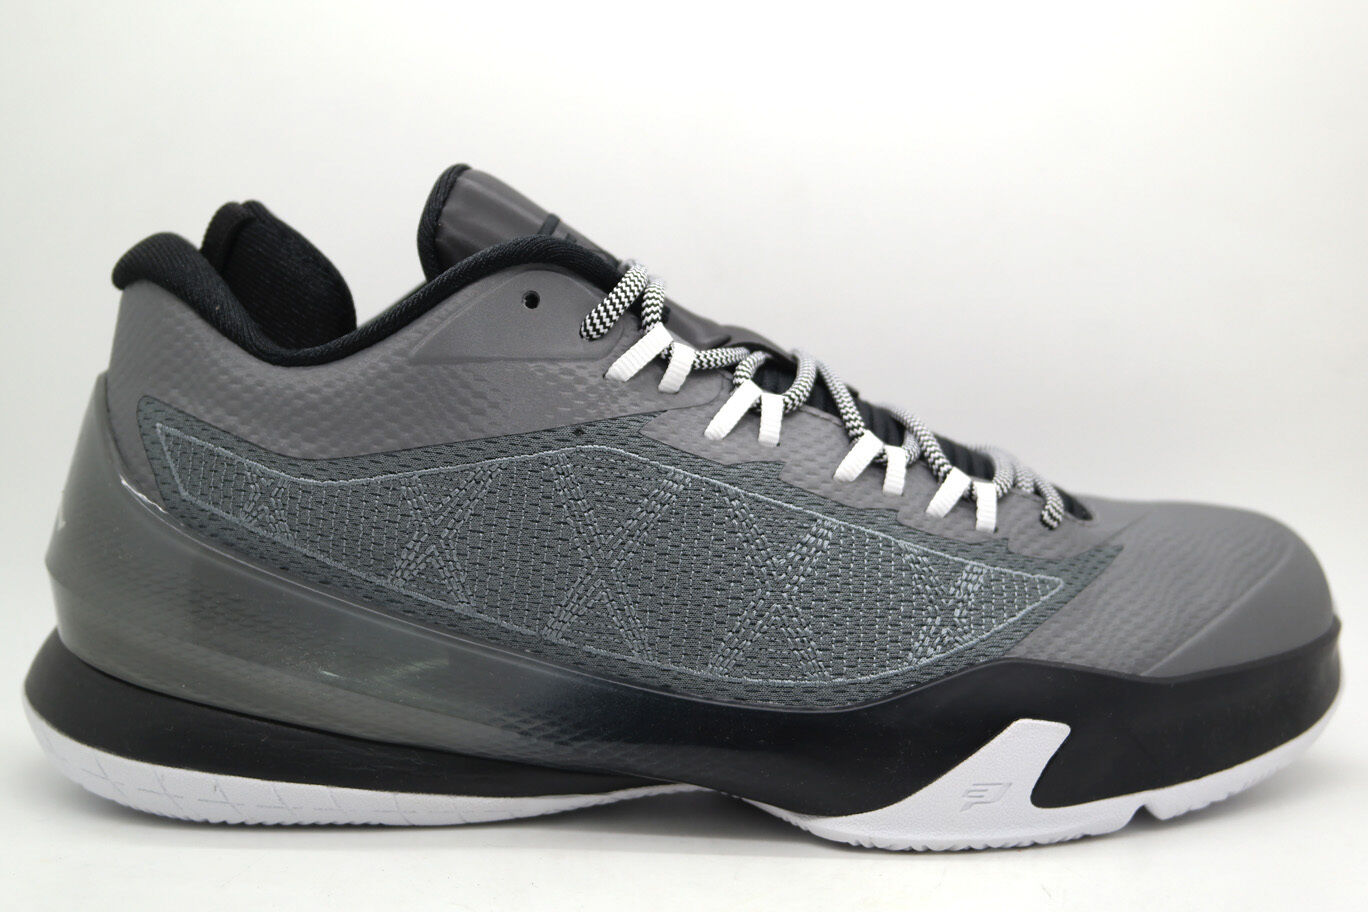 [684855-003] Gris Air Jordan CP3 VIII Hommes Baskets Air Jordan Gris [684855-003] Cool Noir Whitem 0a60ae